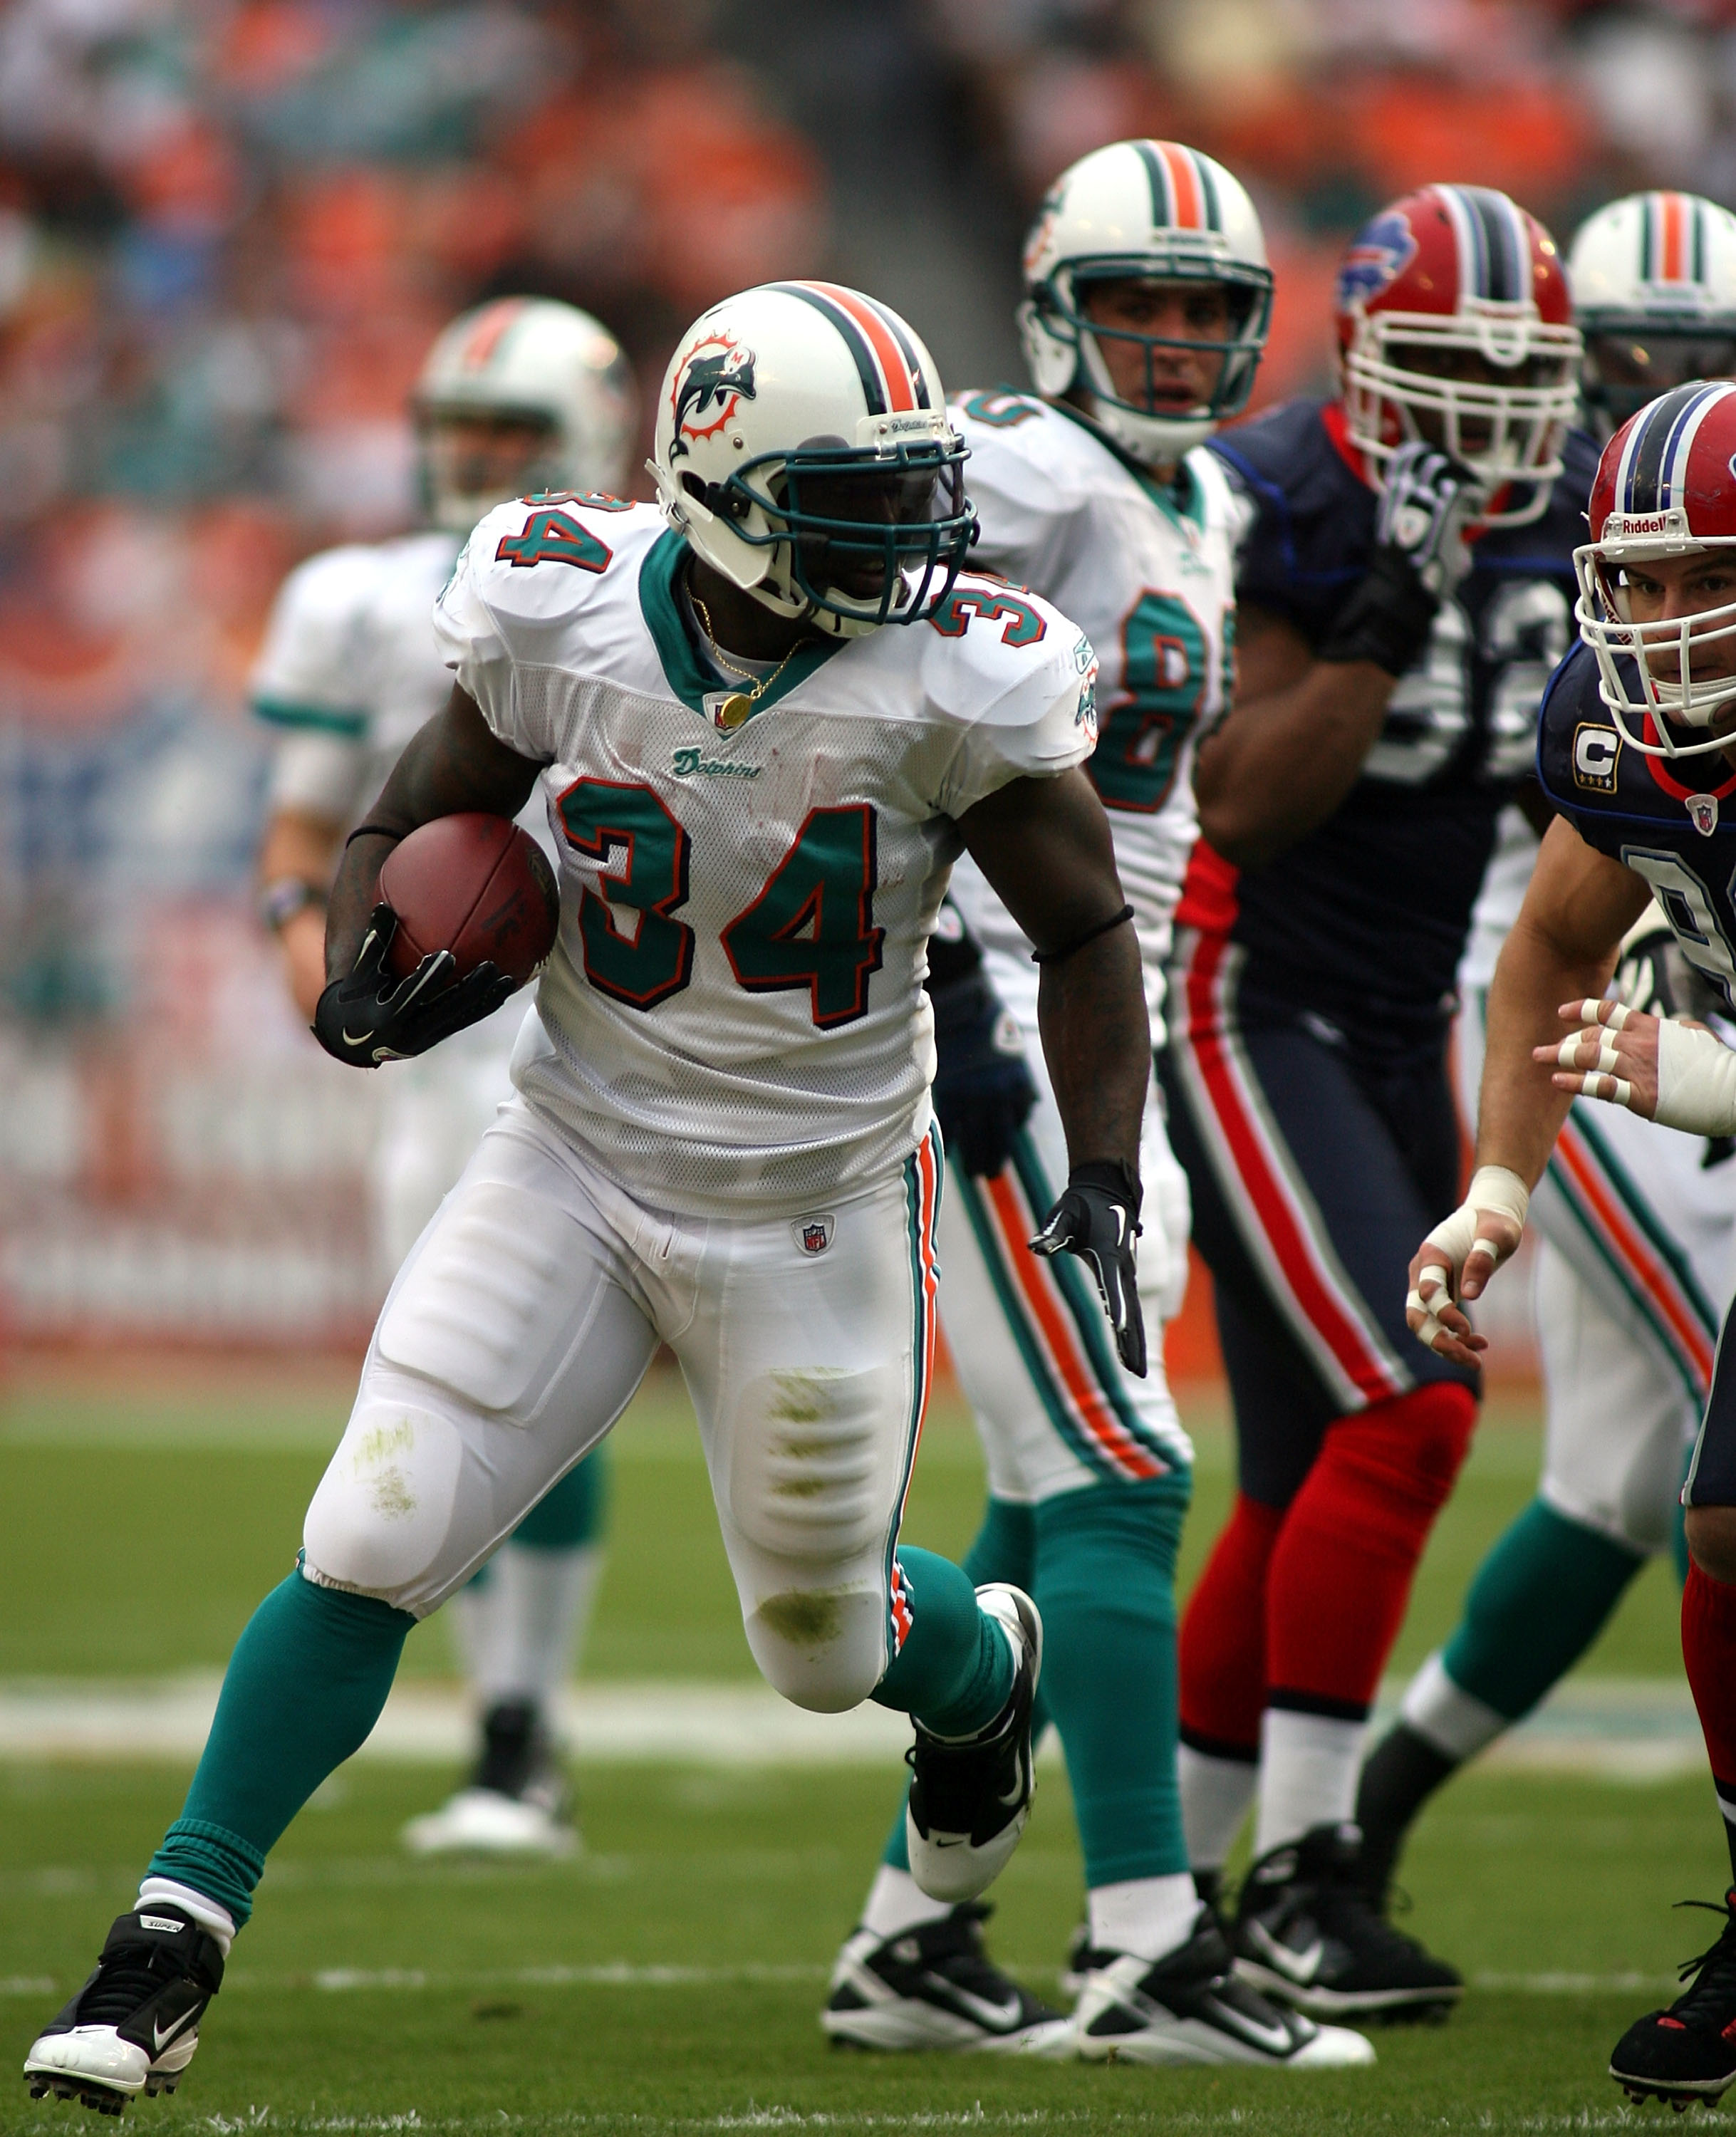 MIAMI - DECEMBER 19:  Running back Ricky Williams #34  of the Miami Dolphins is upended by the Buffalo Bills at Sun Life Stadium on December 19, 2010 in Miami, Florida. The Bills defeated the Dolphins 17-14.  (Photo by Marc Serota/Getty Images)